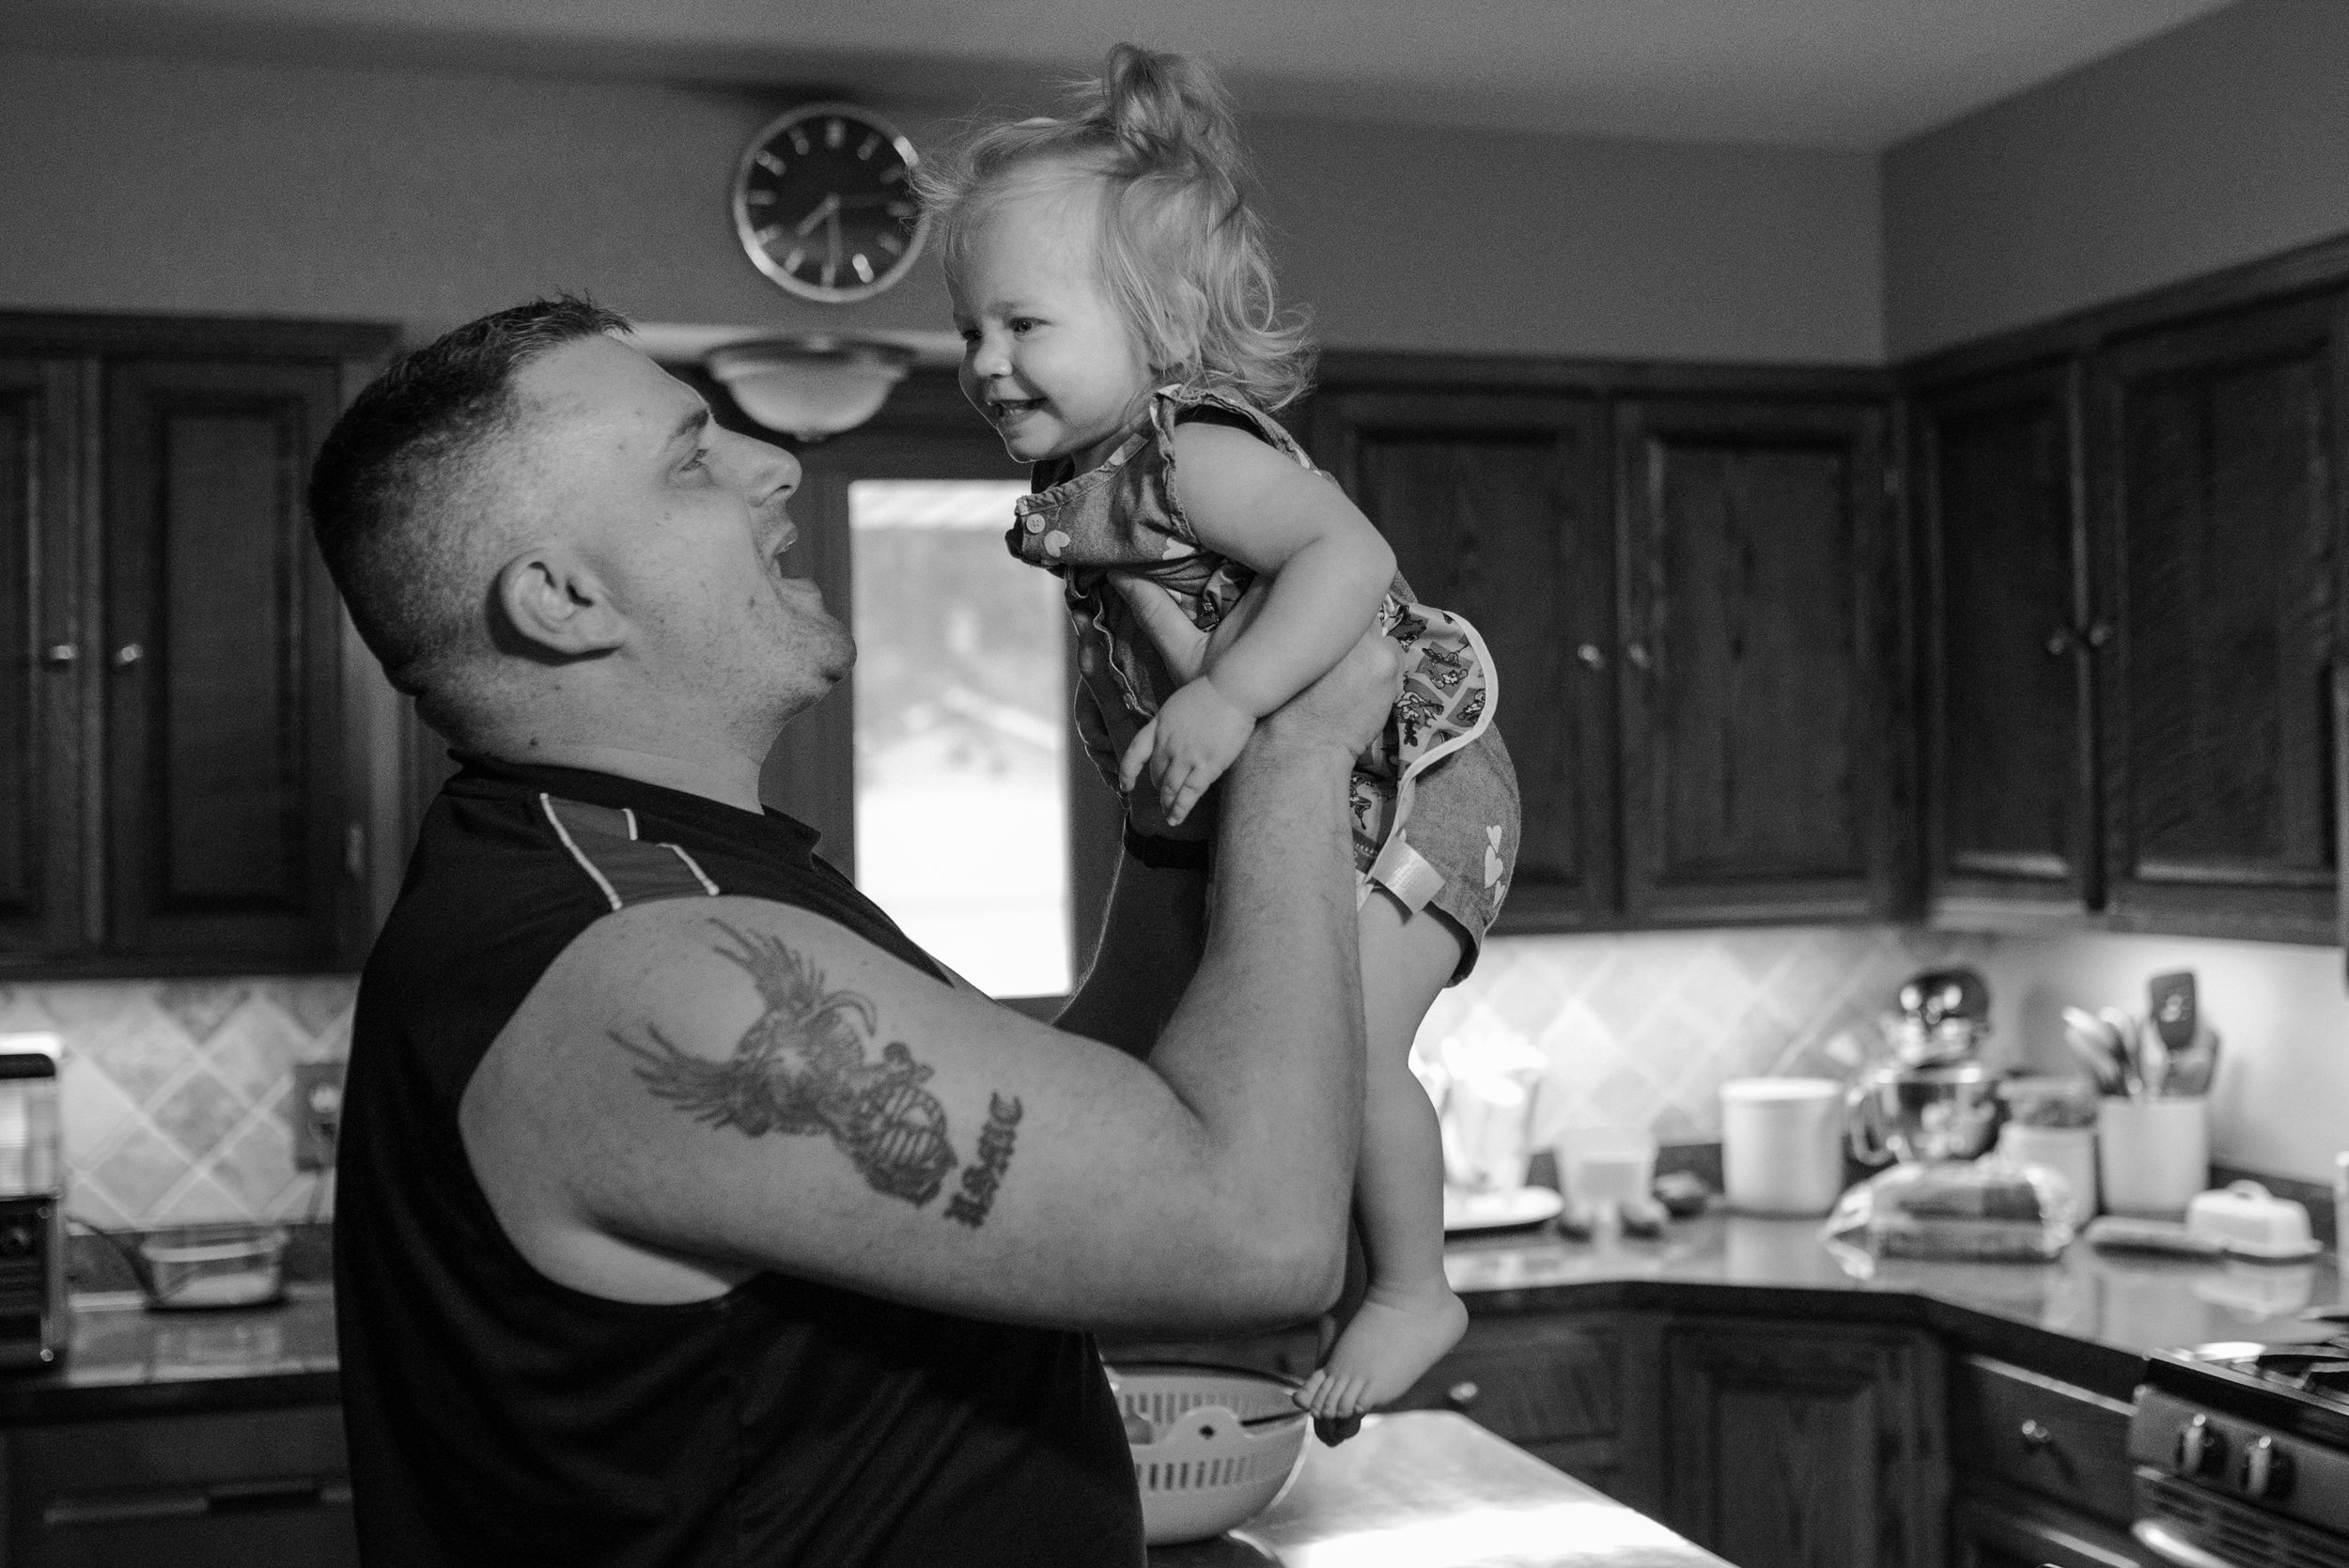 Dad holding up smiling toddler daughter in the kitchen